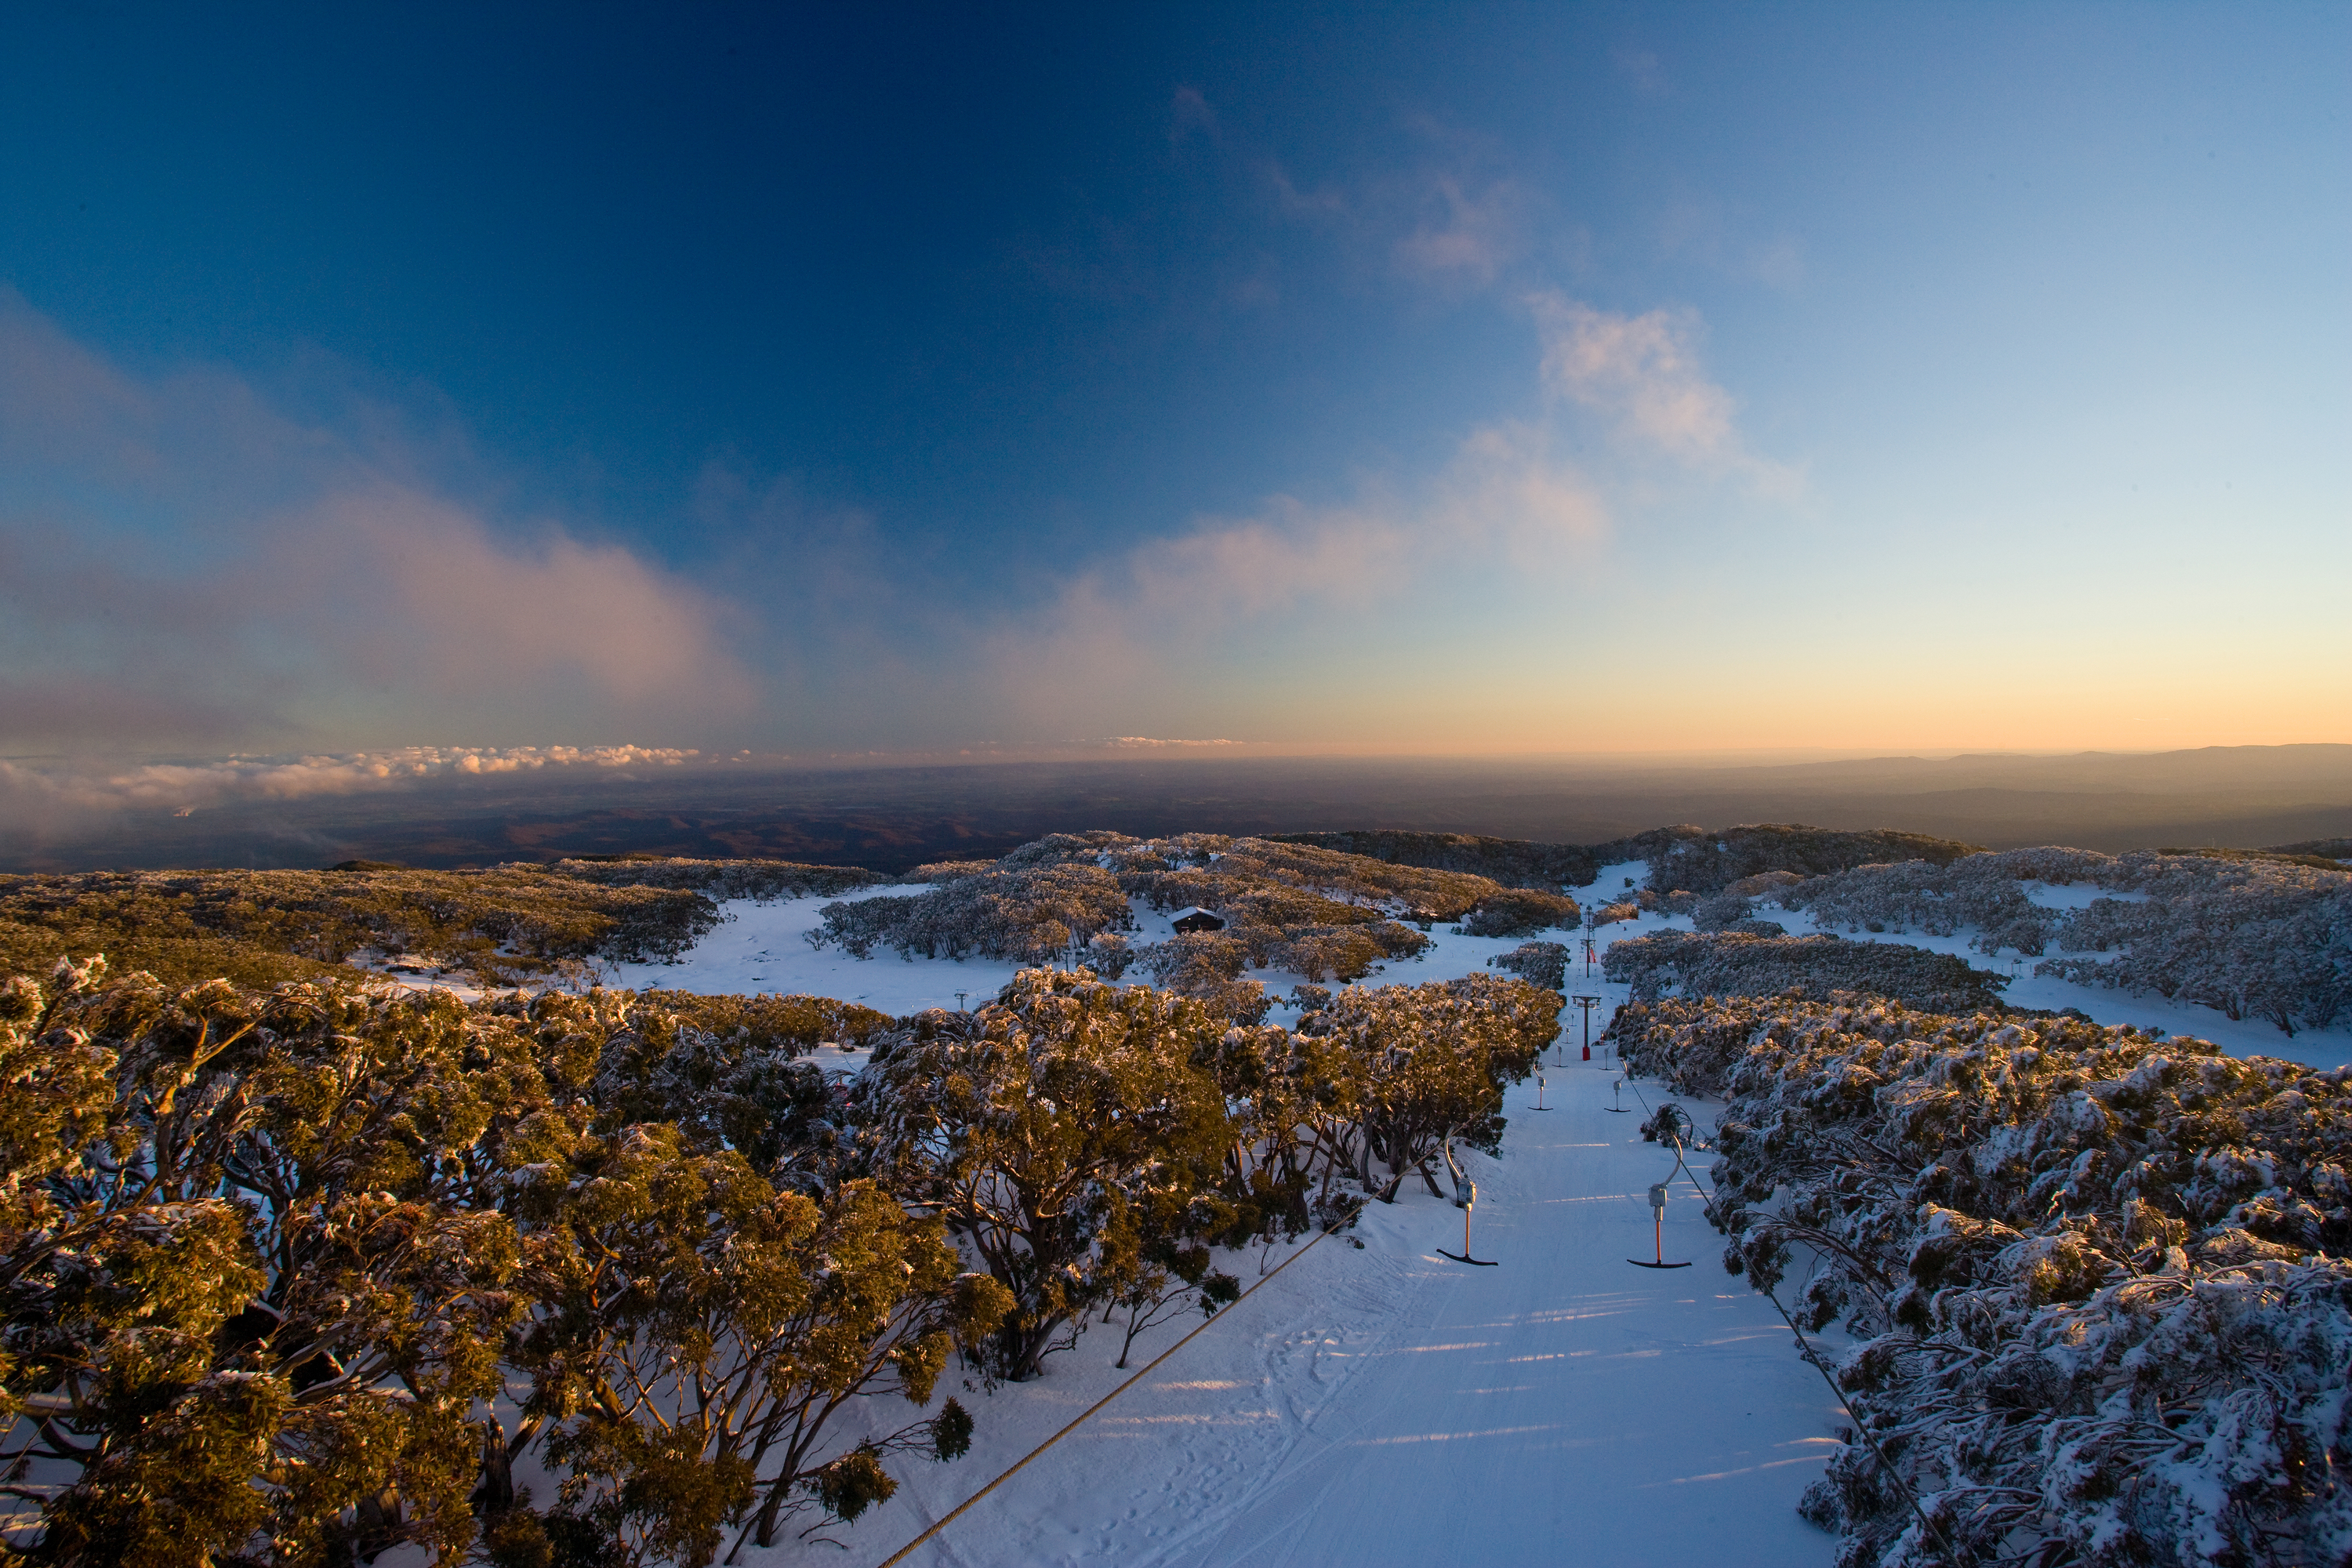 Ski slopes Mount Baw Baw Alpine ranges of Victoria